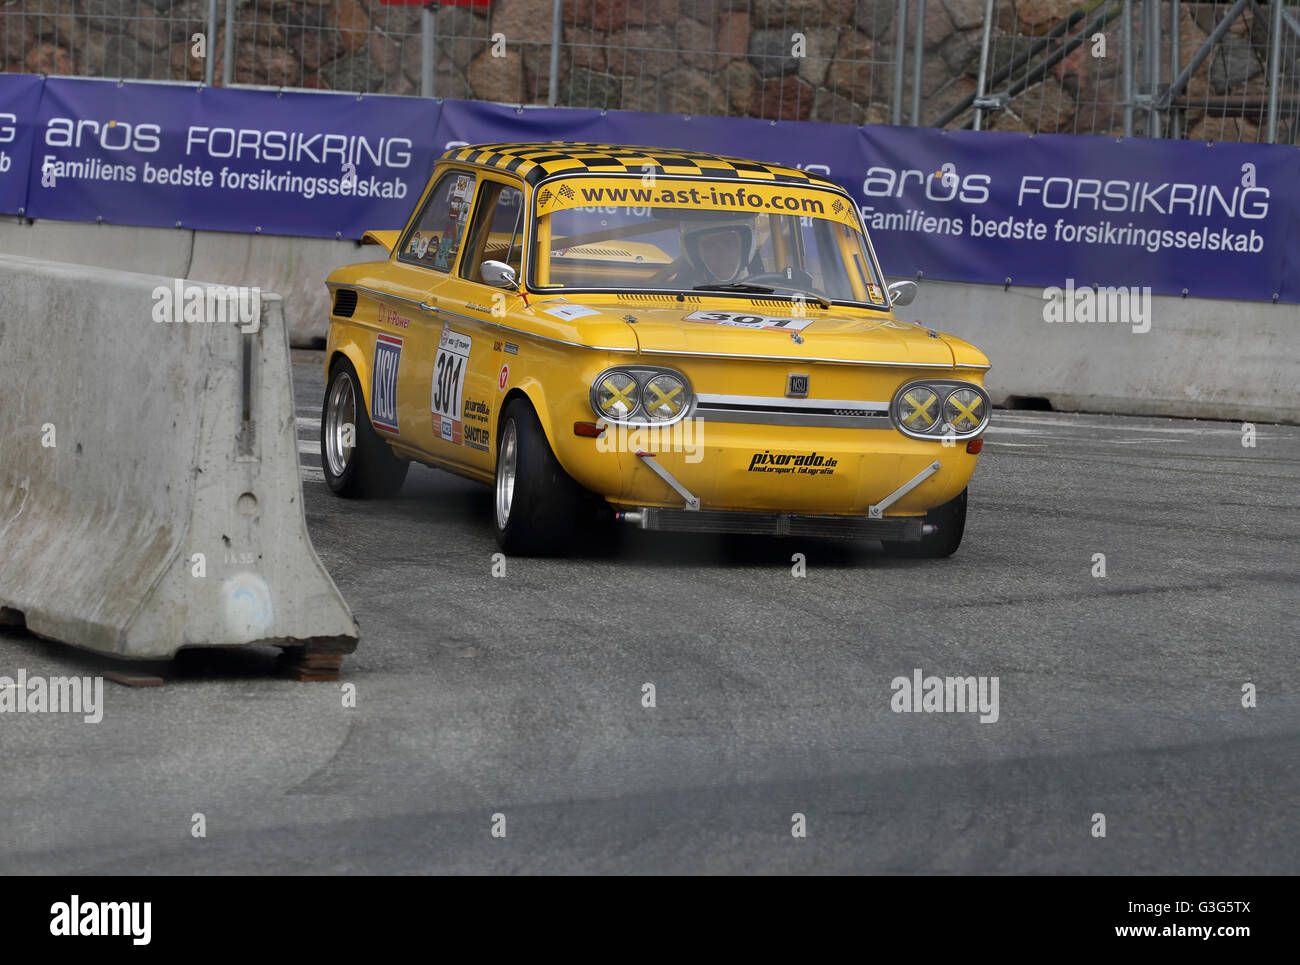 A NSU TT being raced at the classic car racing event Classic Race Aarhus in May 2016 - Stock Image